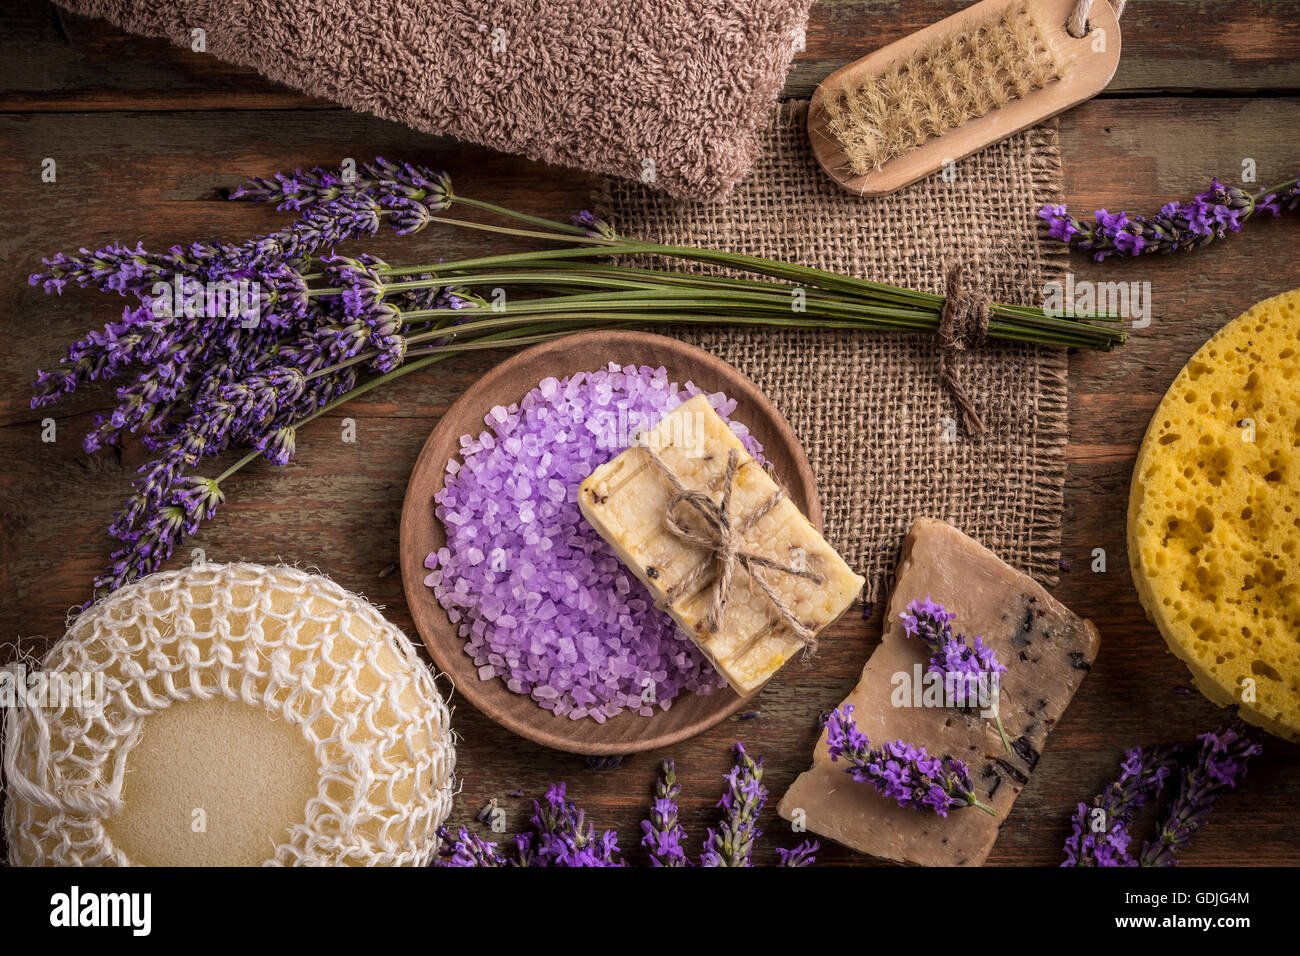 Natural soap, lavender and salt on a wooden board - Stock Image